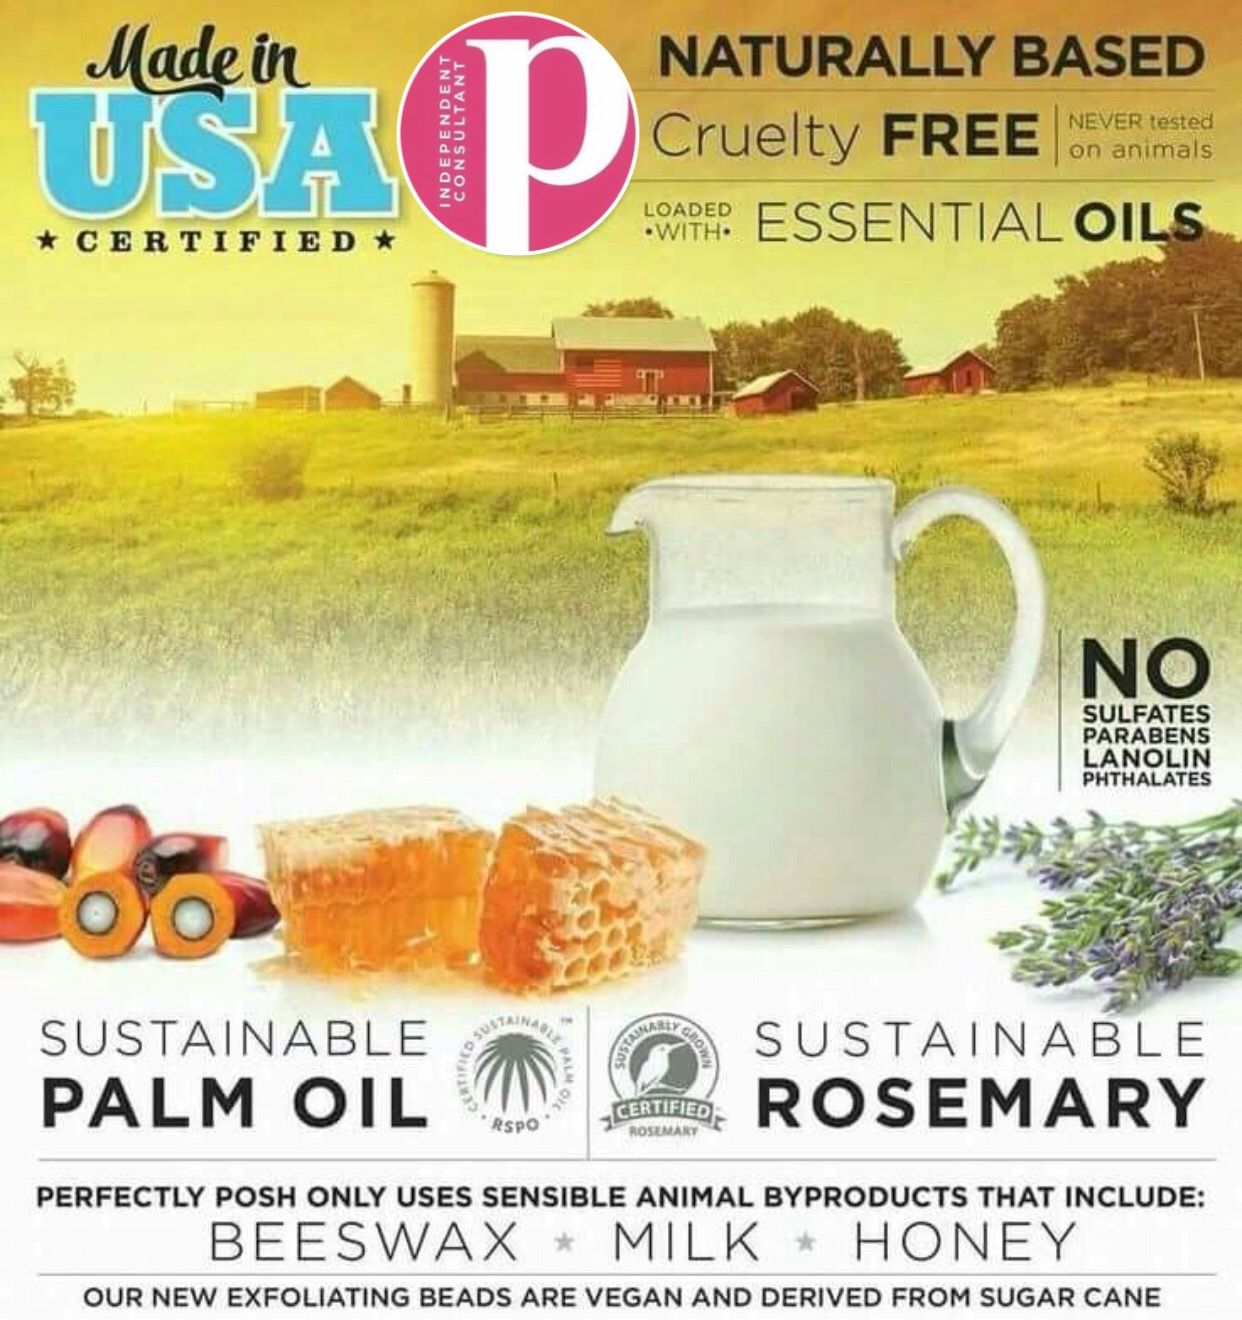 Pin By Angela Casher On Perfectly Posh Independent Consultant Perfectly Posh Organic Skin Care Recipes Posh Products